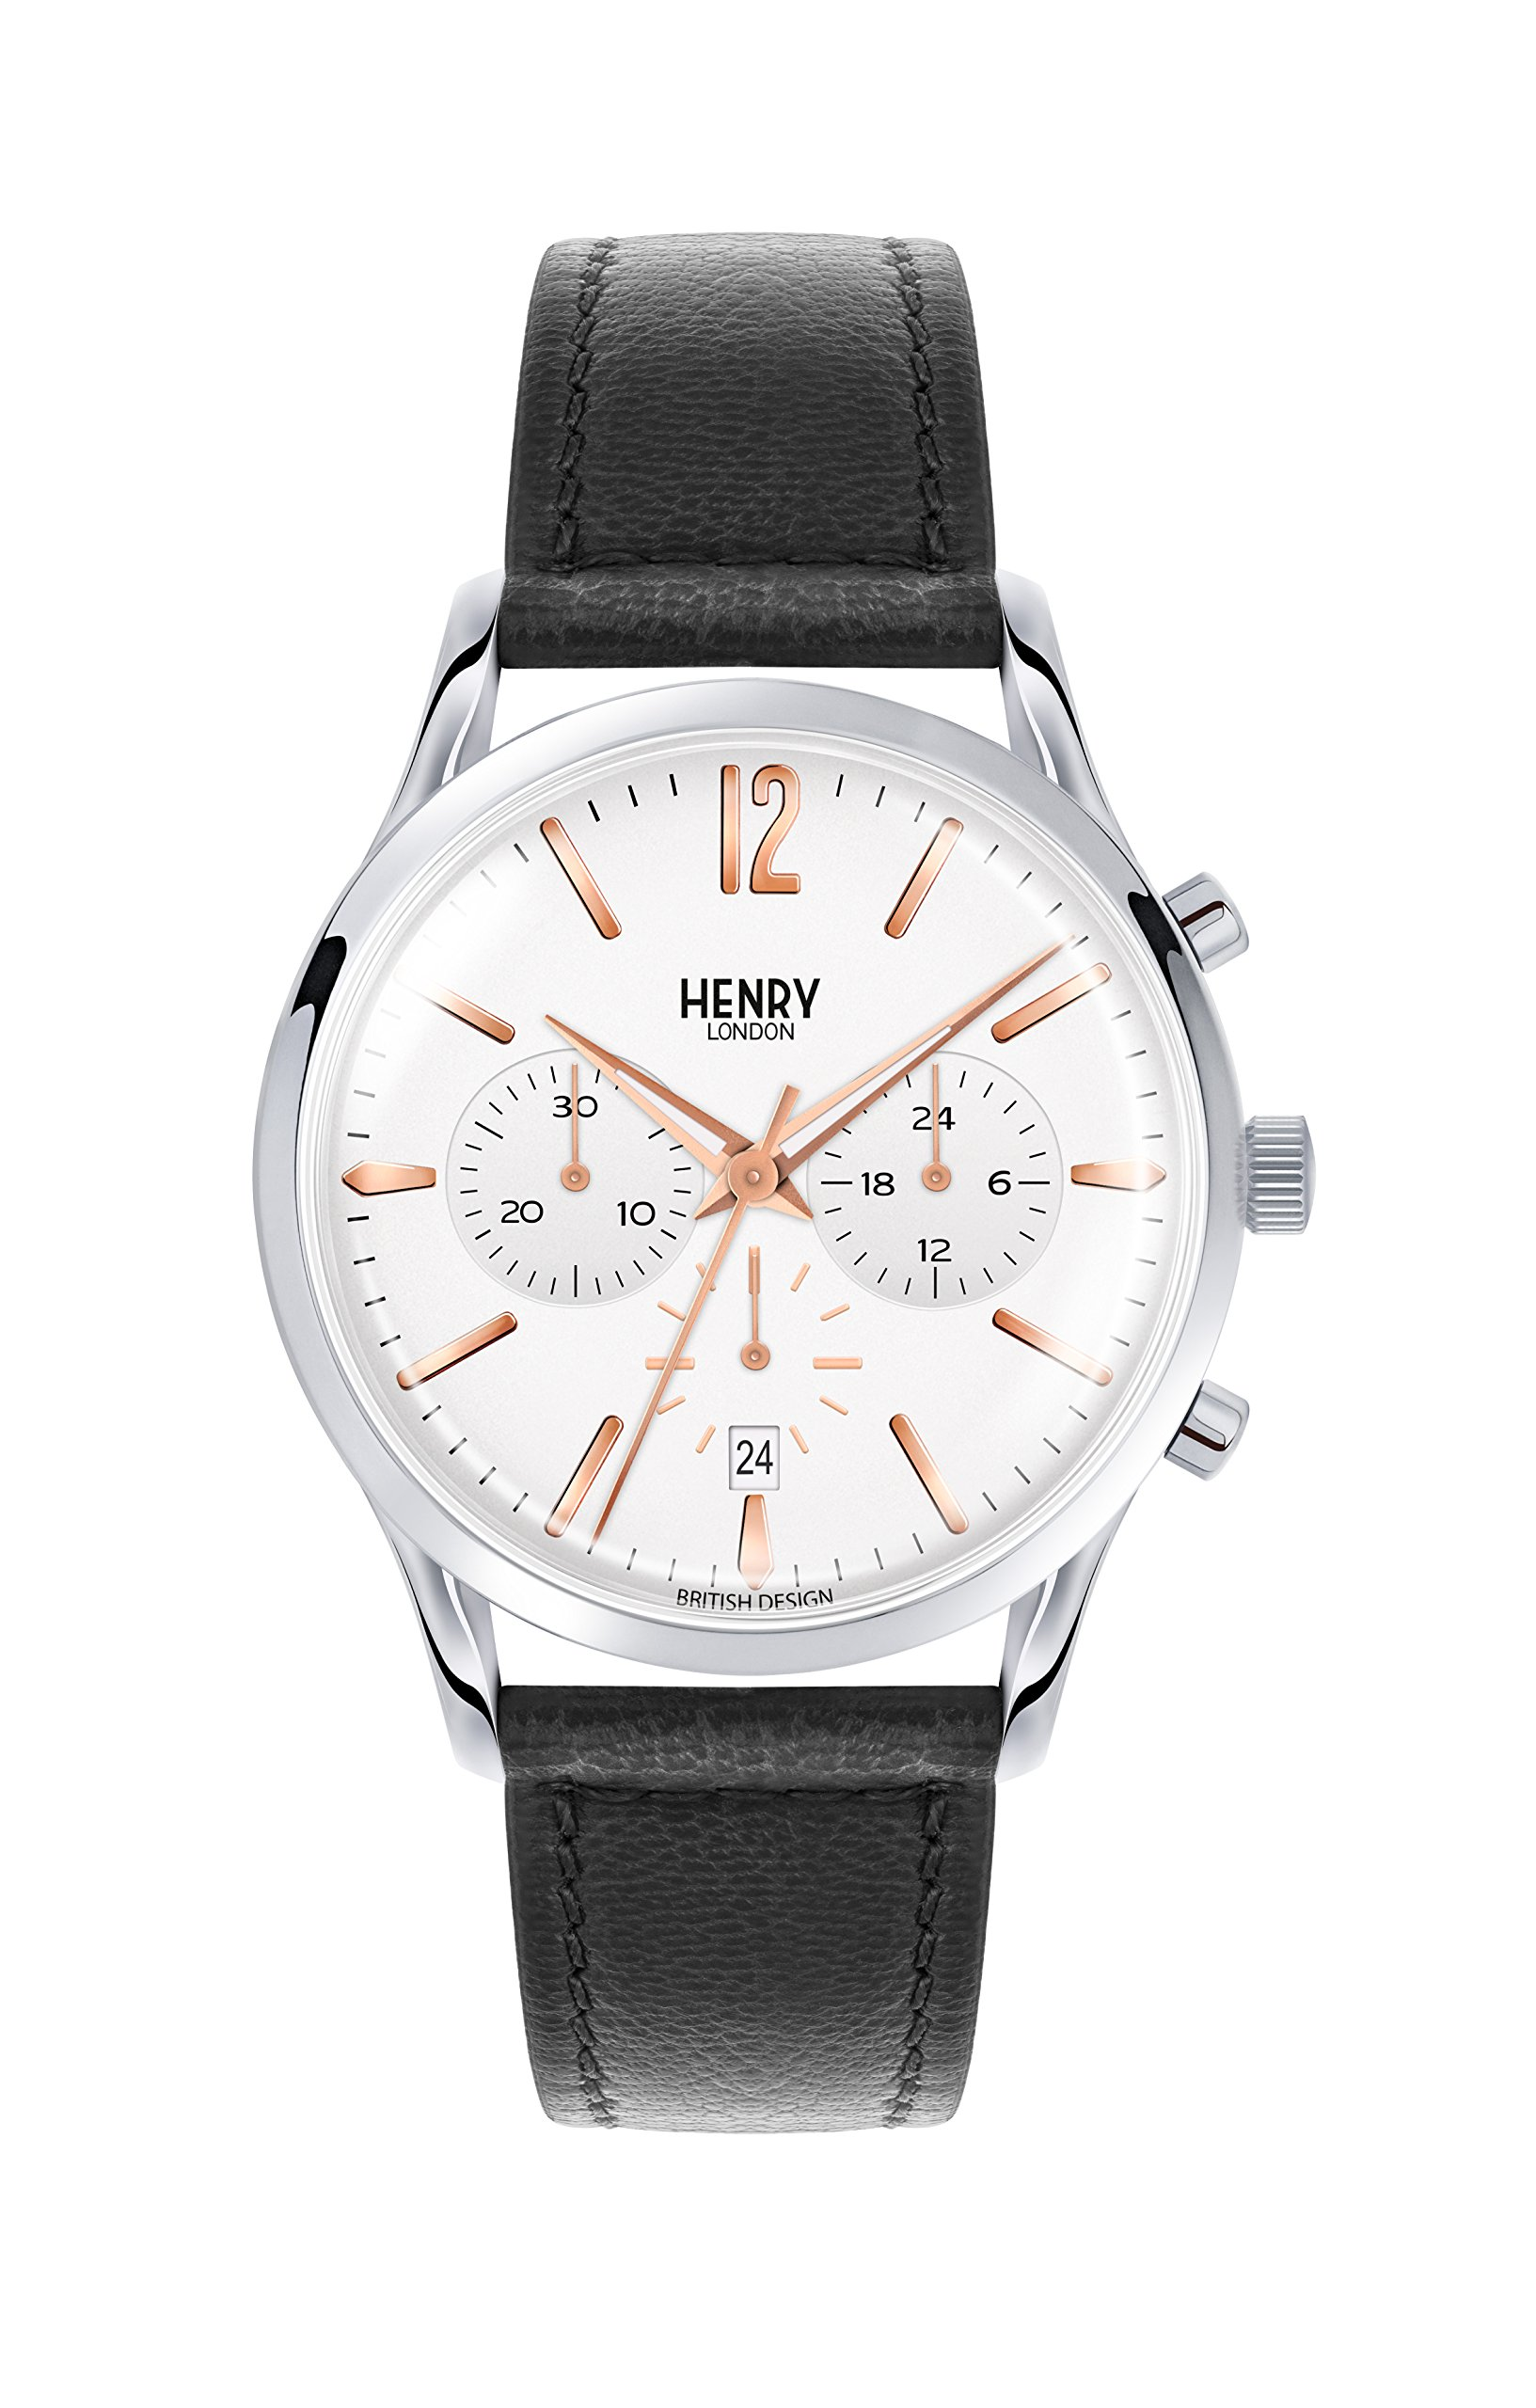 Henry High Gate London Unisex Quartz Watch with Chronograph Quartz Leather Fred Perry 0011 HL41